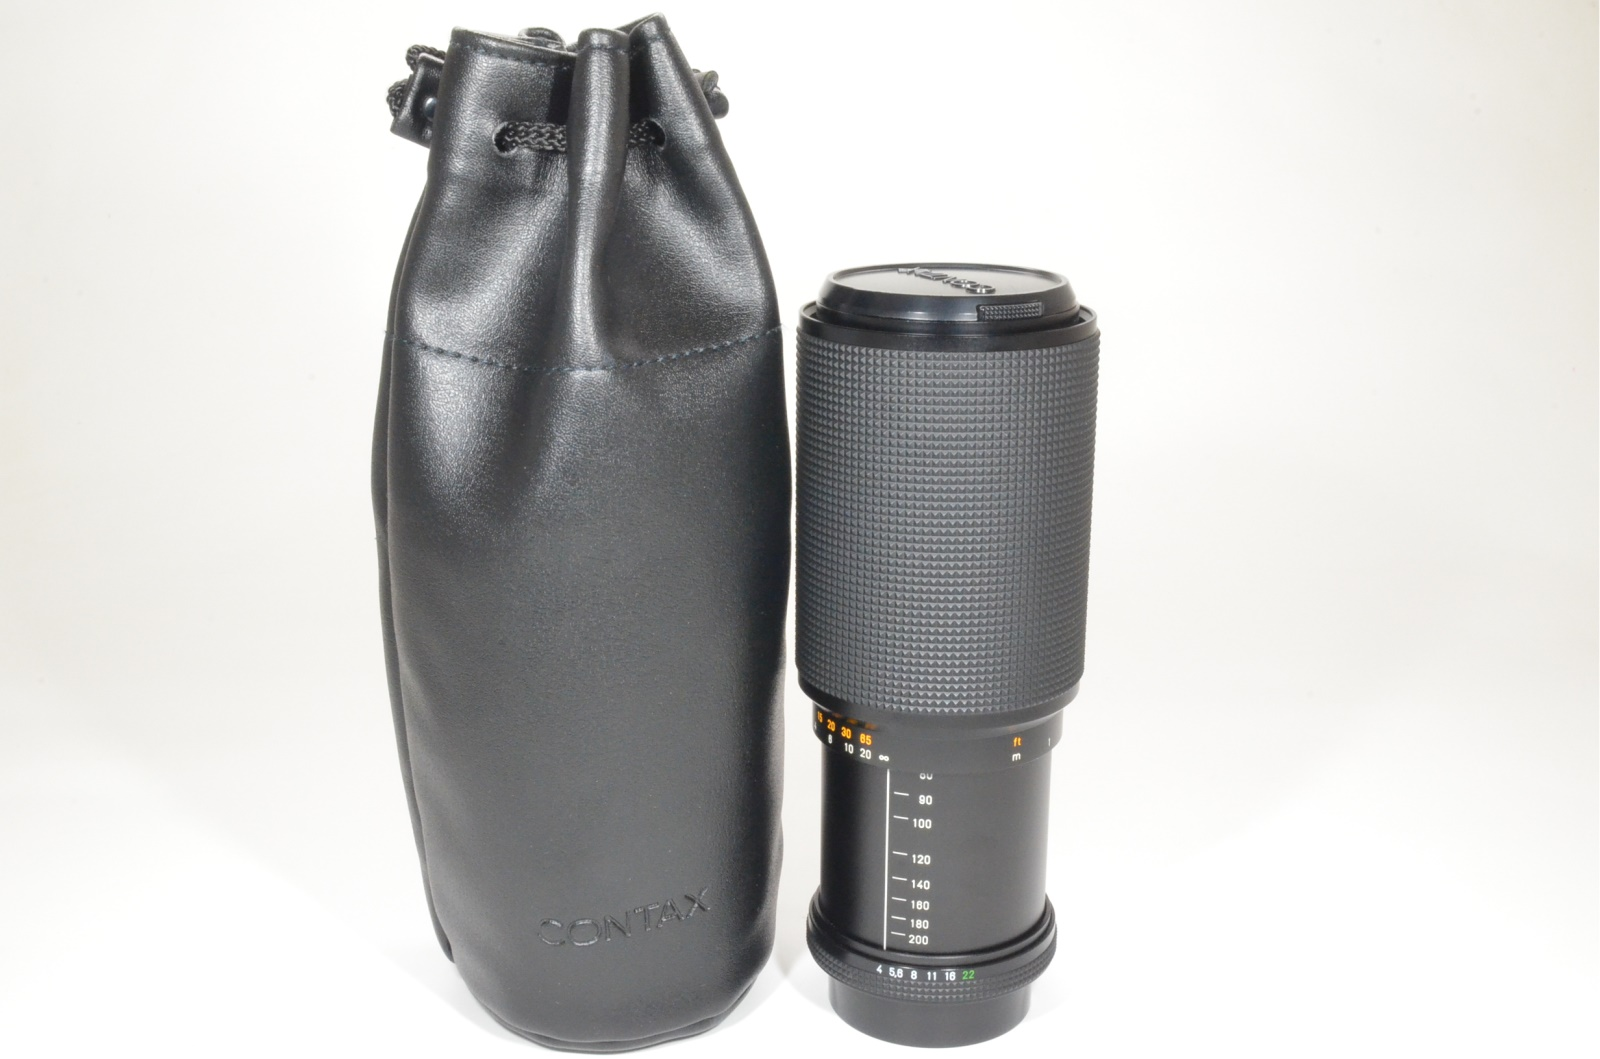 contax carl zeiss t* vario-sonnar 80-200mm f4 mmj made in japan